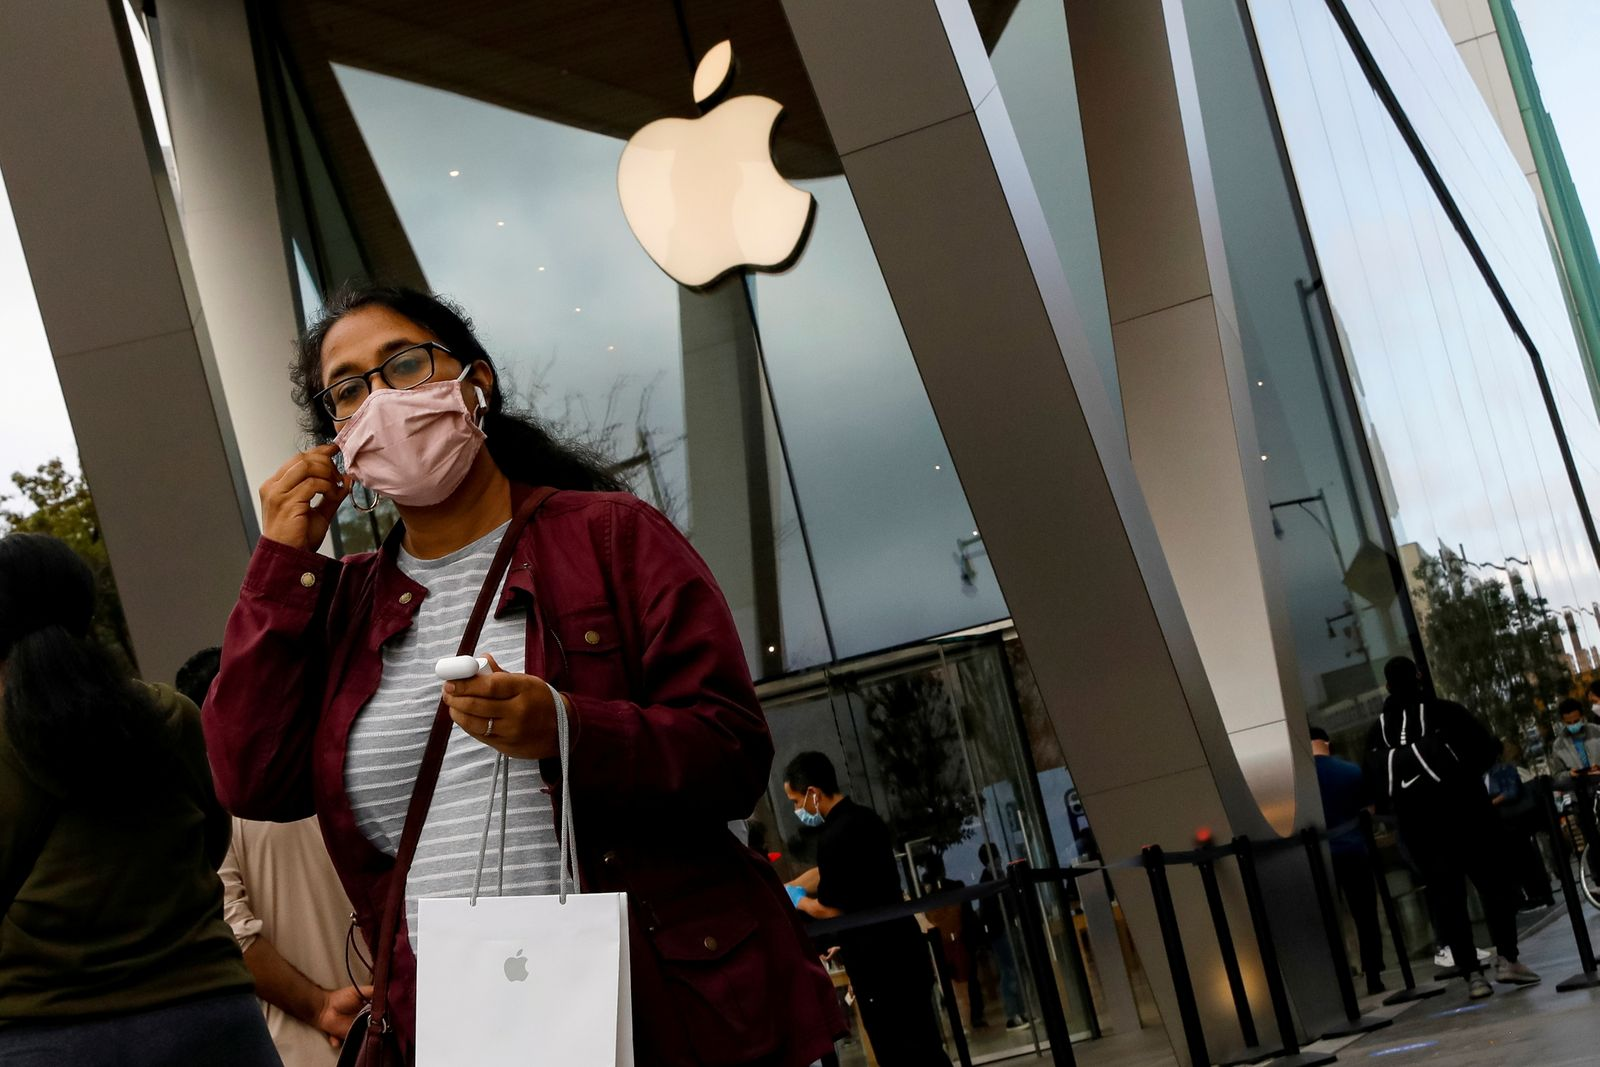 FILE PHOTO: A customer exits after picking up Apple's new 5G iPhone 12 that went on sale at an Apple Store in Brooklyn, New York